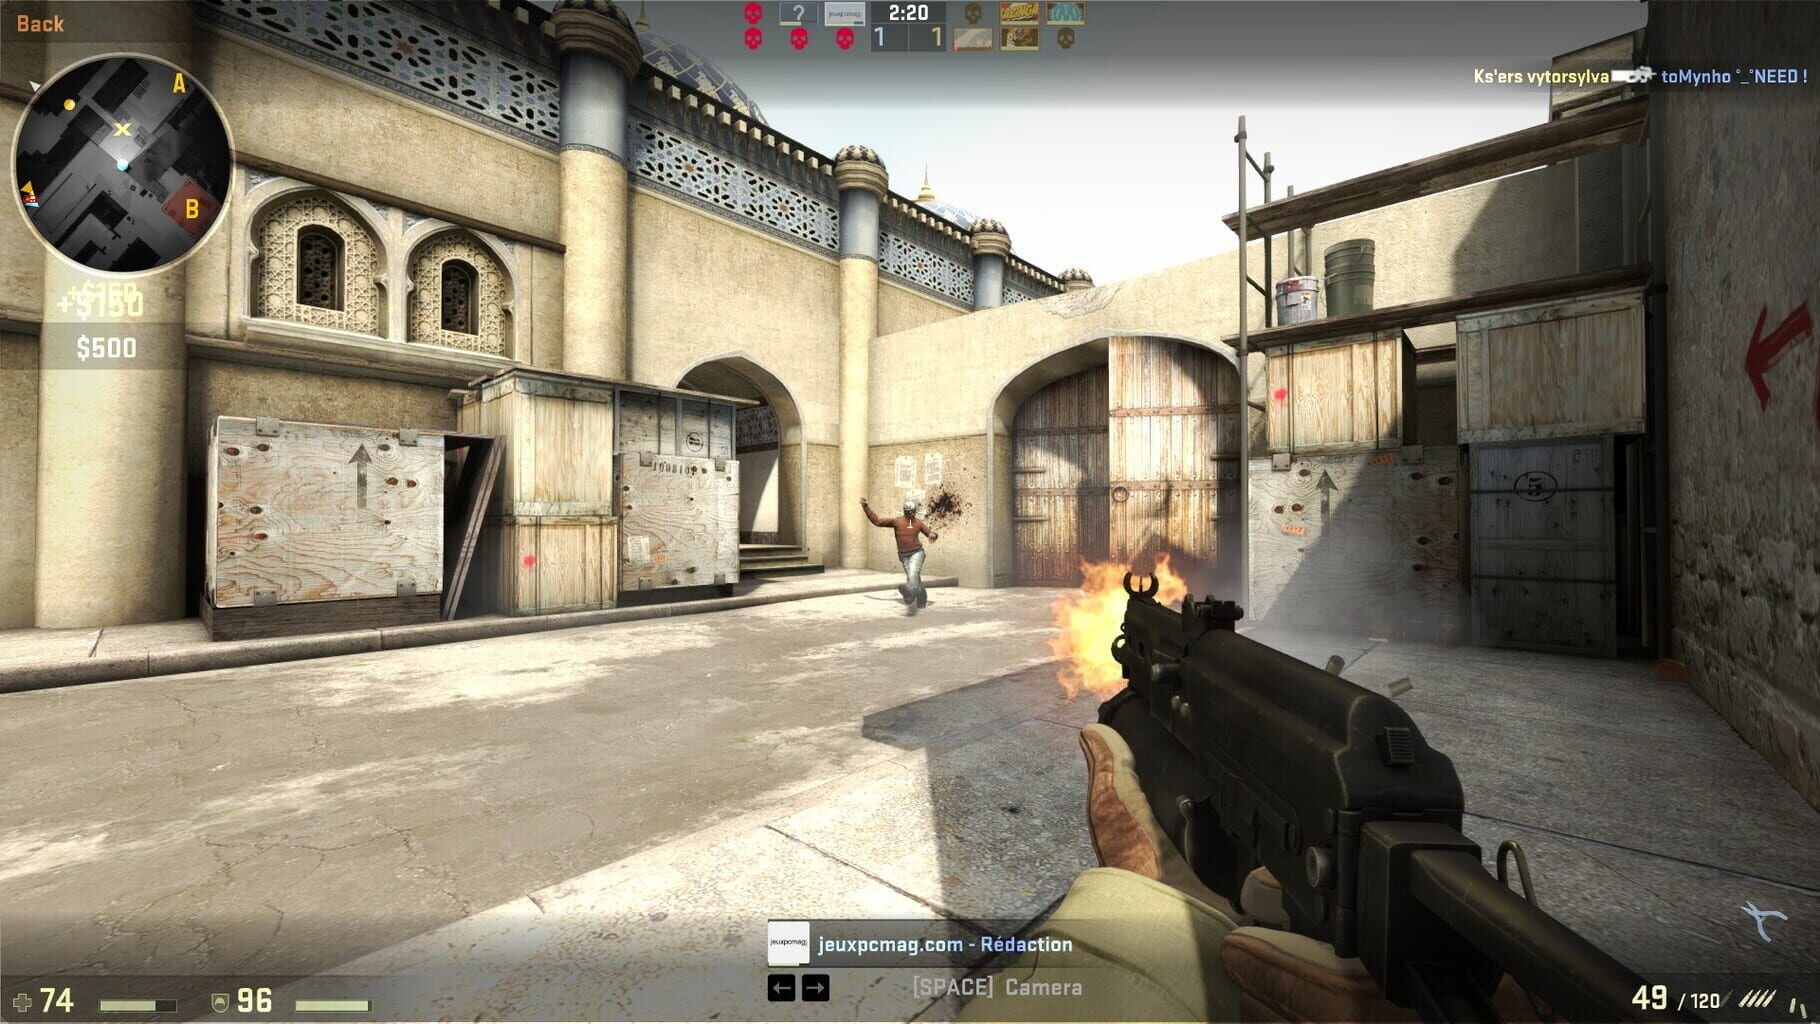 Gameplay Screenshot from Counter-Strike: Global Offensive